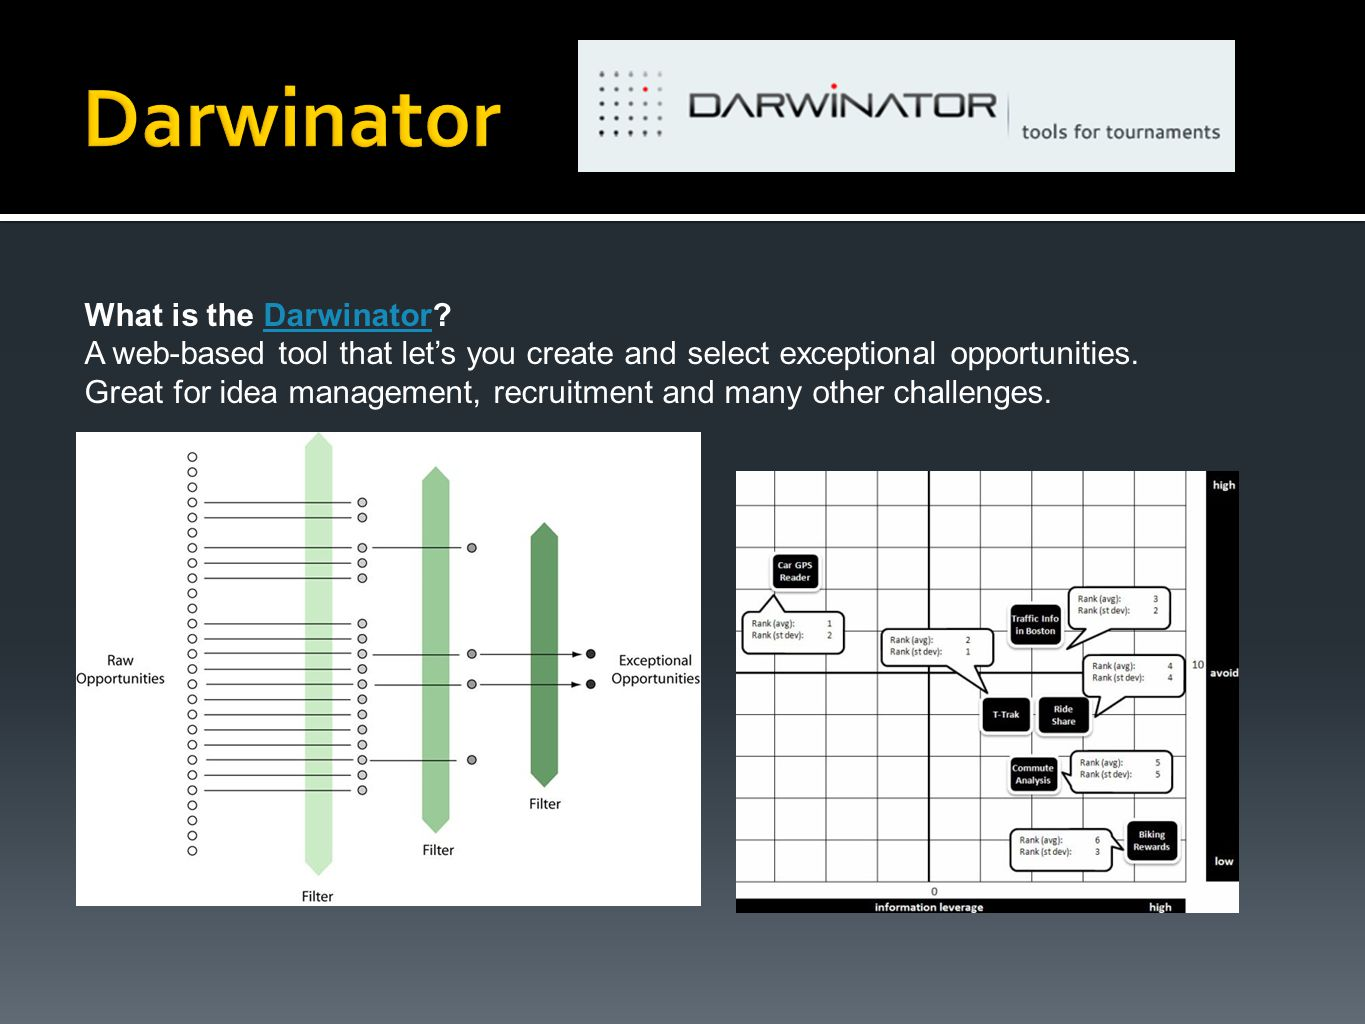 What is the Darwinator Darwinator A web-based tool that let's you create and select exceptional opportunities.